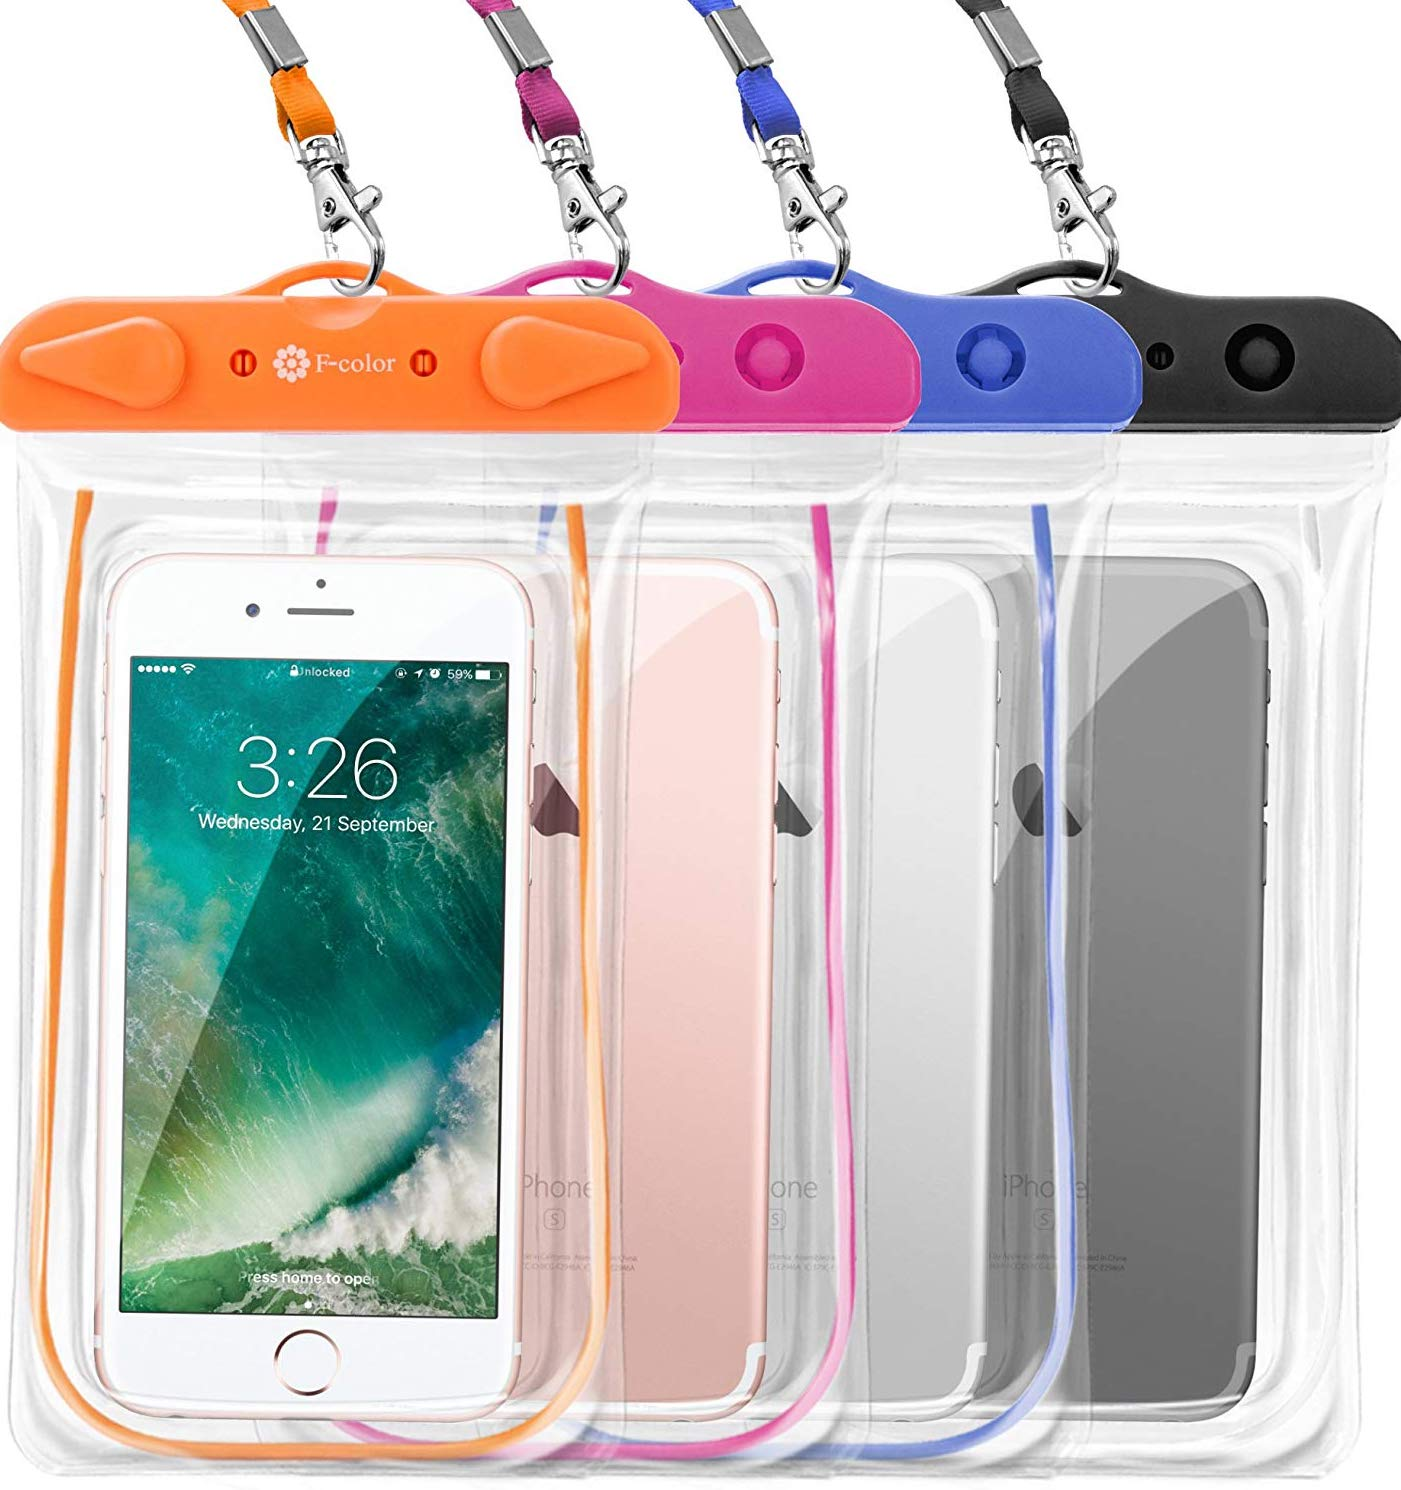 F-color waterproof cases for iPhone 8 Plus.